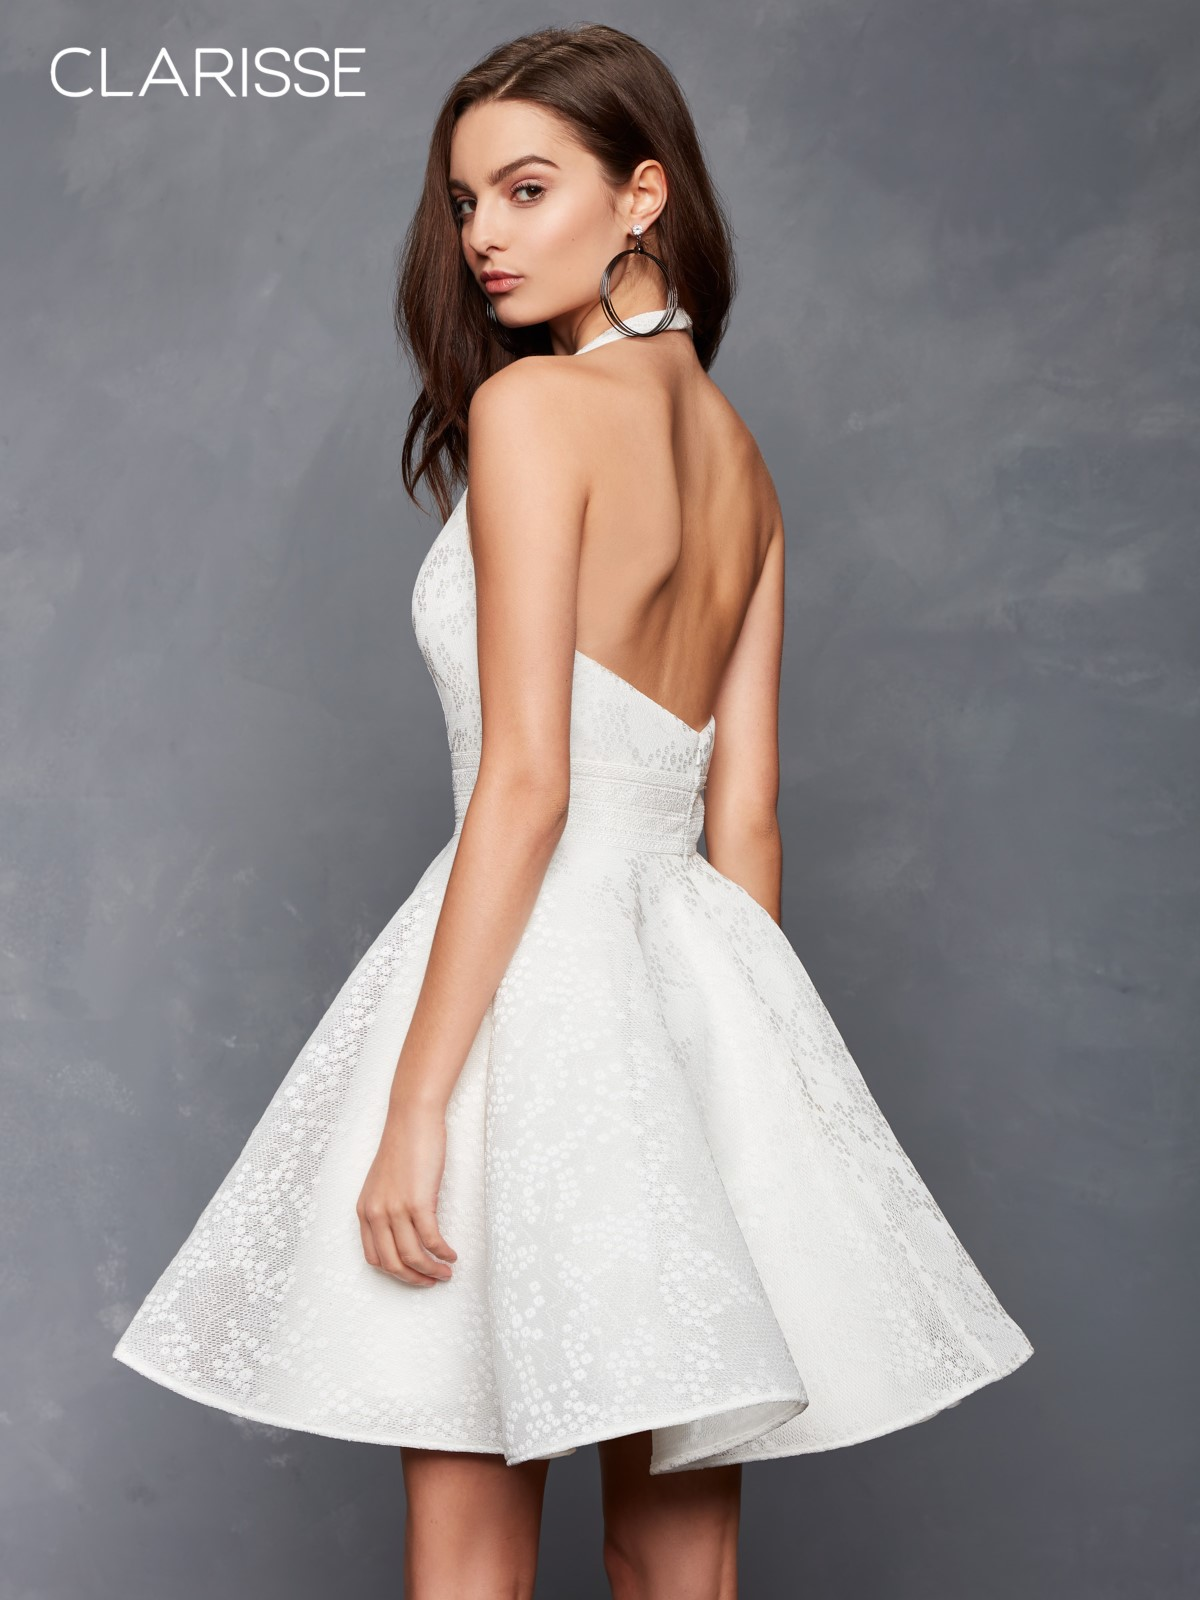 Vintage Inspired Homecoming Dresses